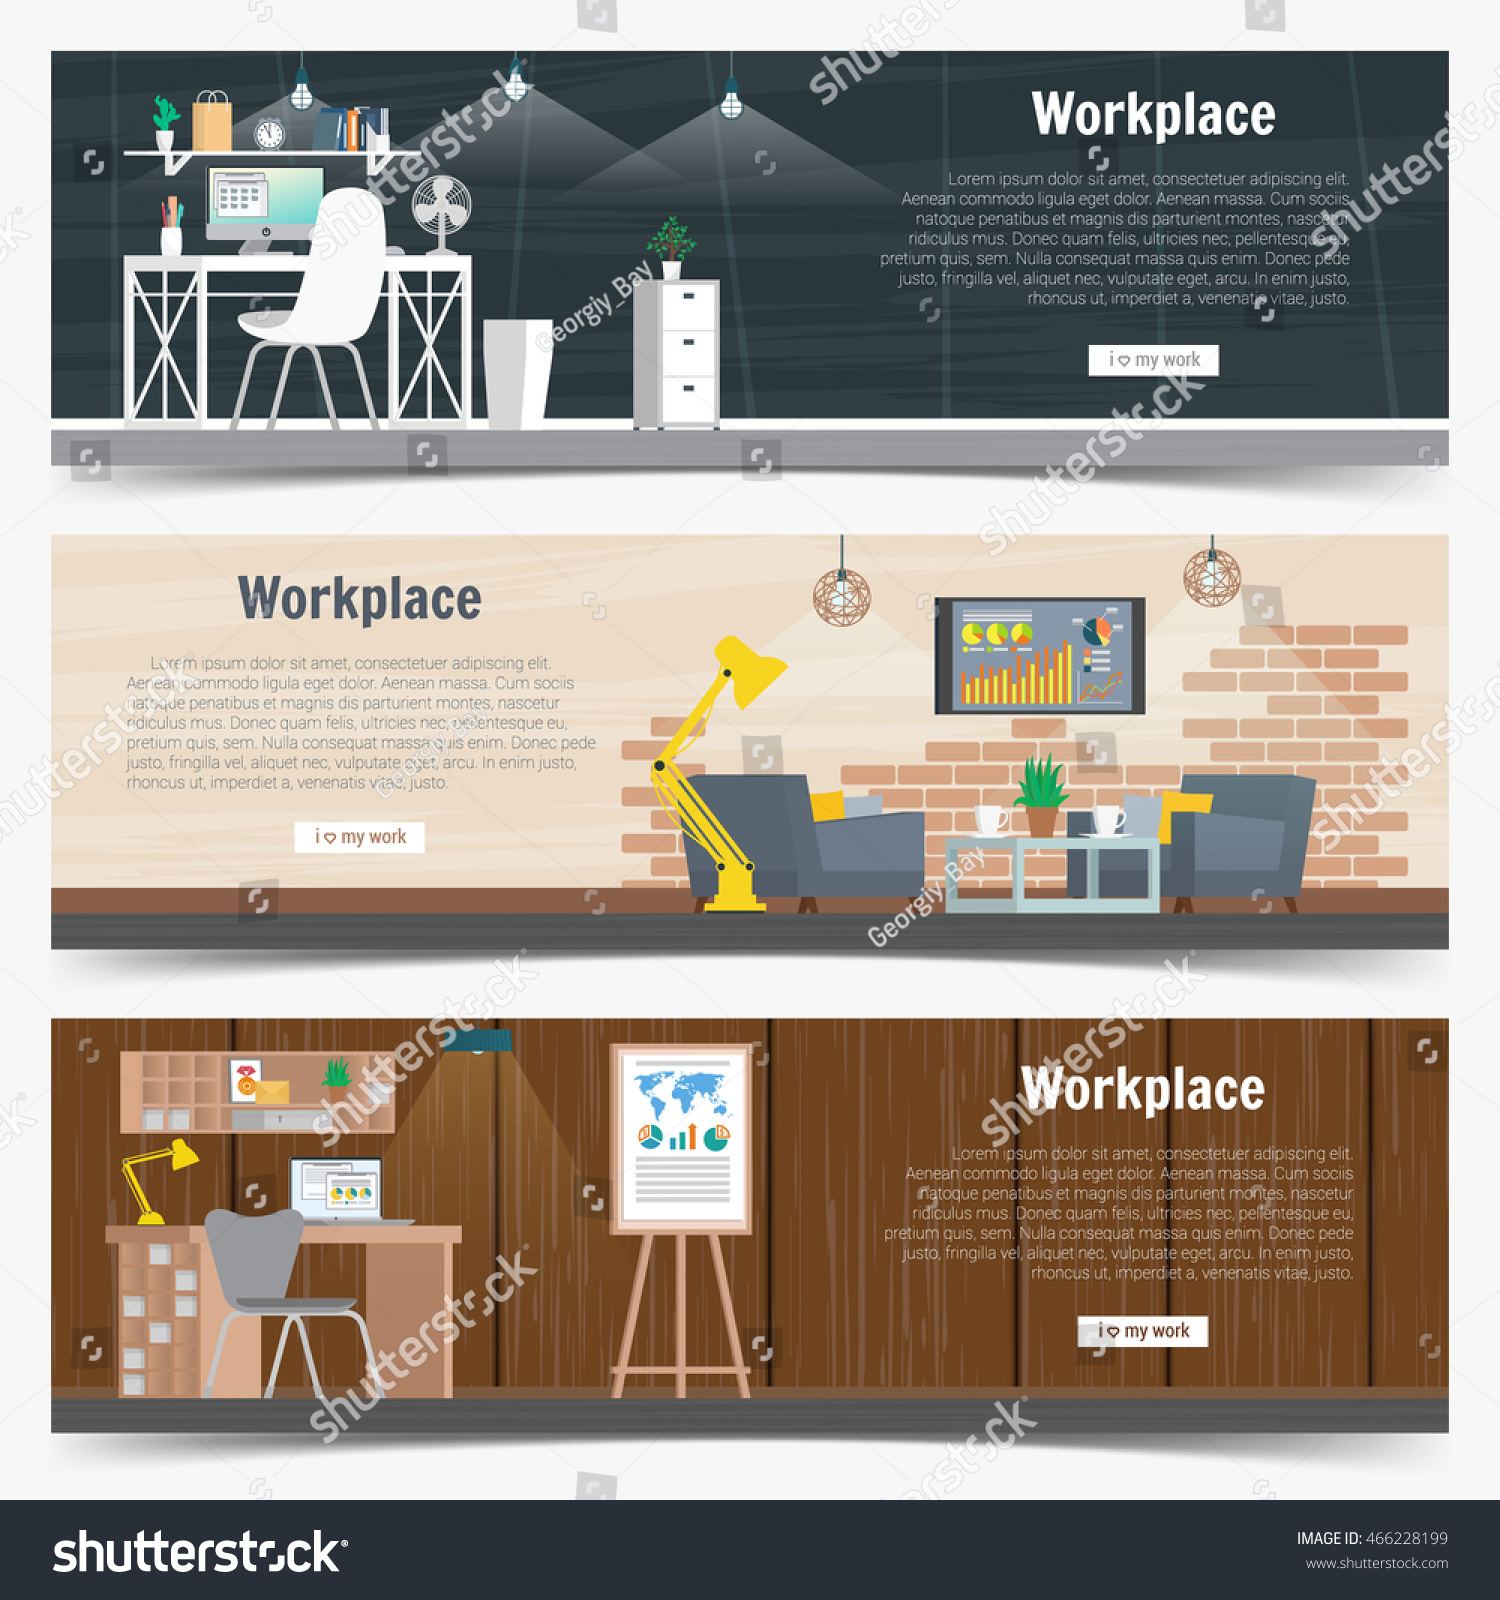 Web Banner Set Office Workplace Interior Design Graphic Business Objects Elements And Equipment